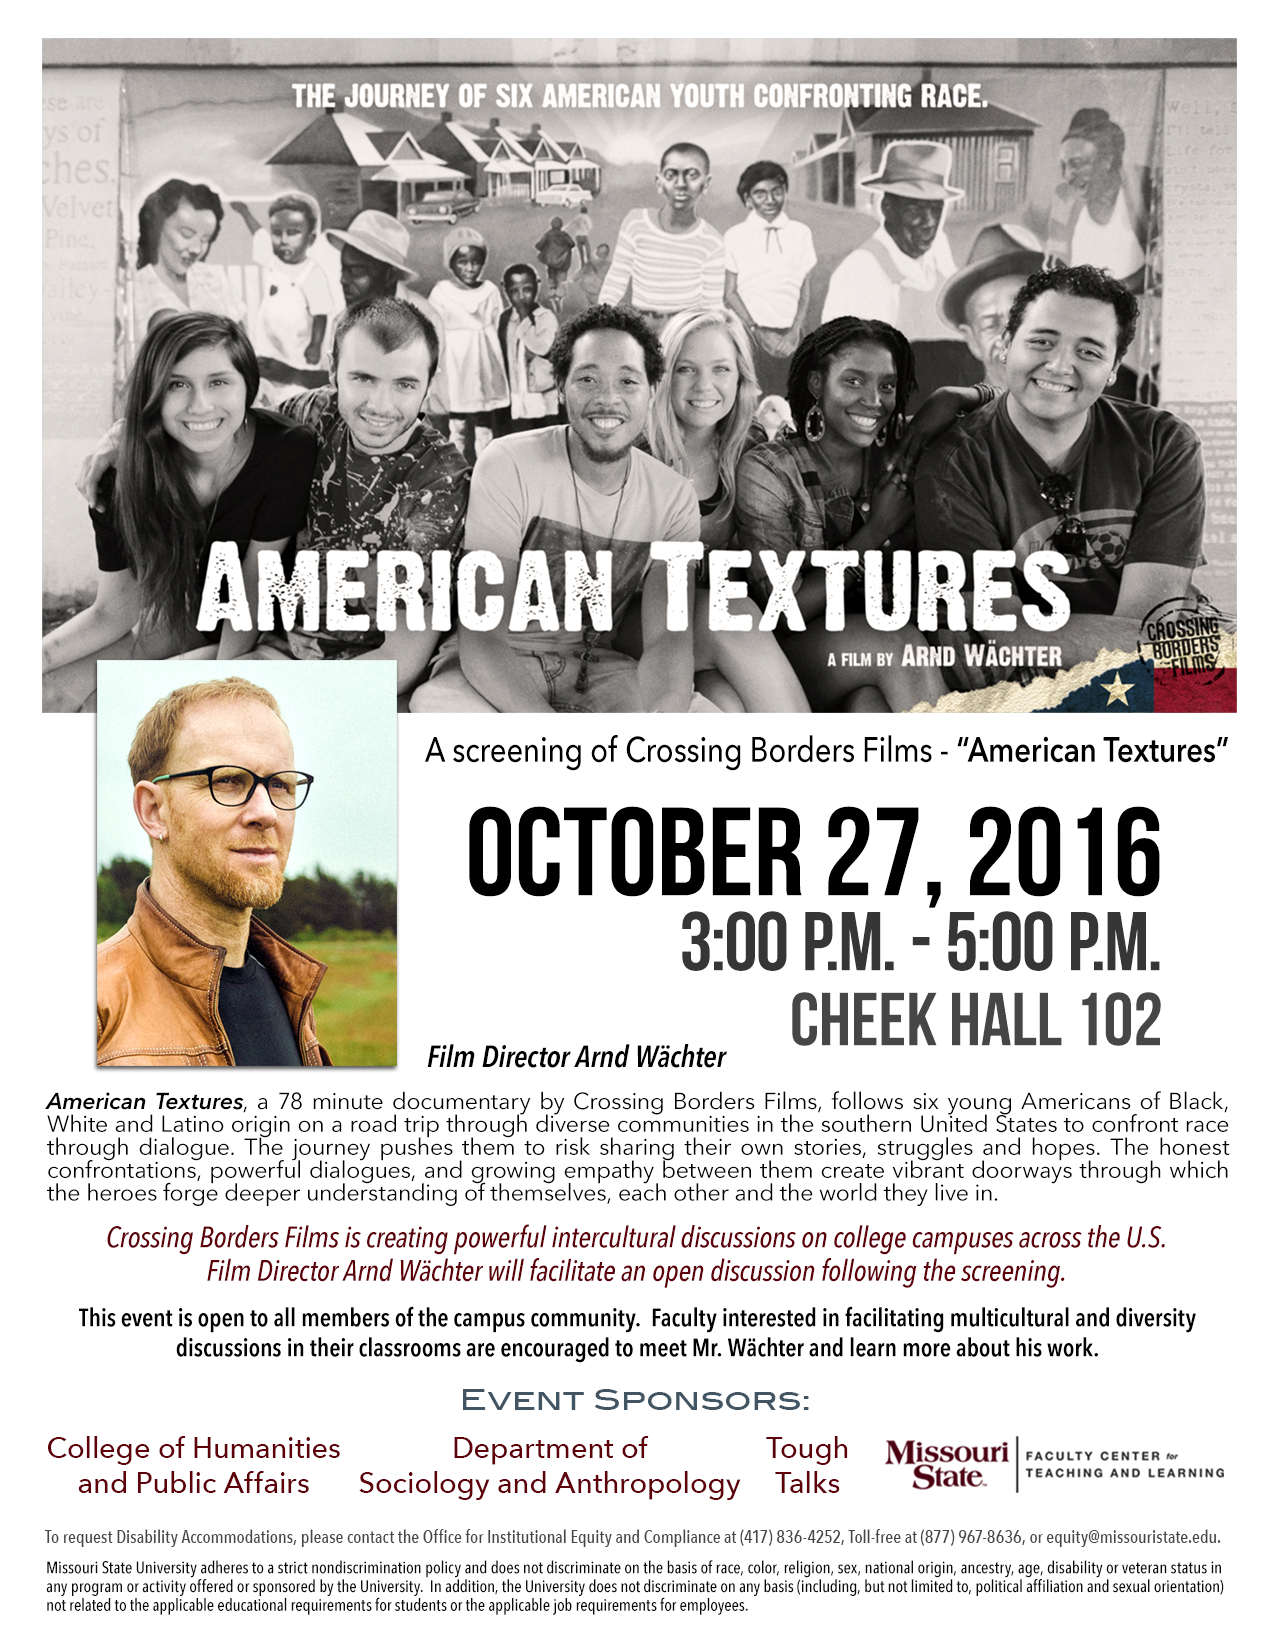 Tough Talk Special Session: American Textures